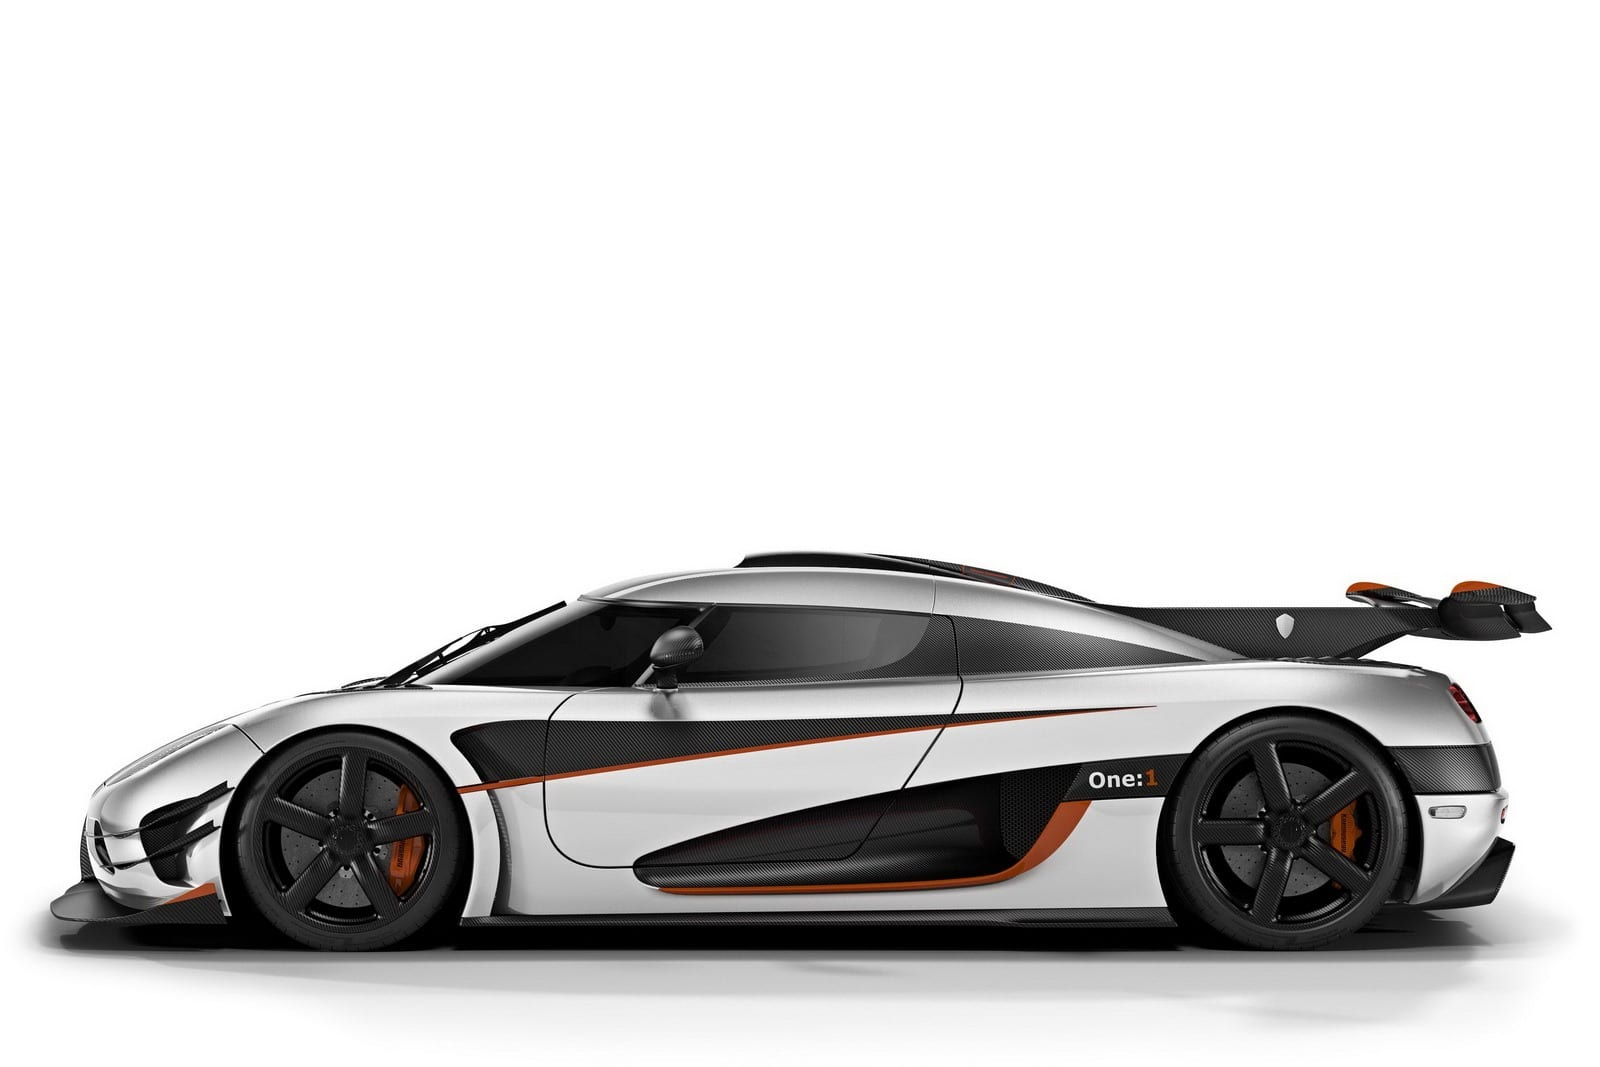 koenigsegg agera one 1 2014 1 360 ch pour 1 360 kg. Black Bedroom Furniture Sets. Home Design Ideas